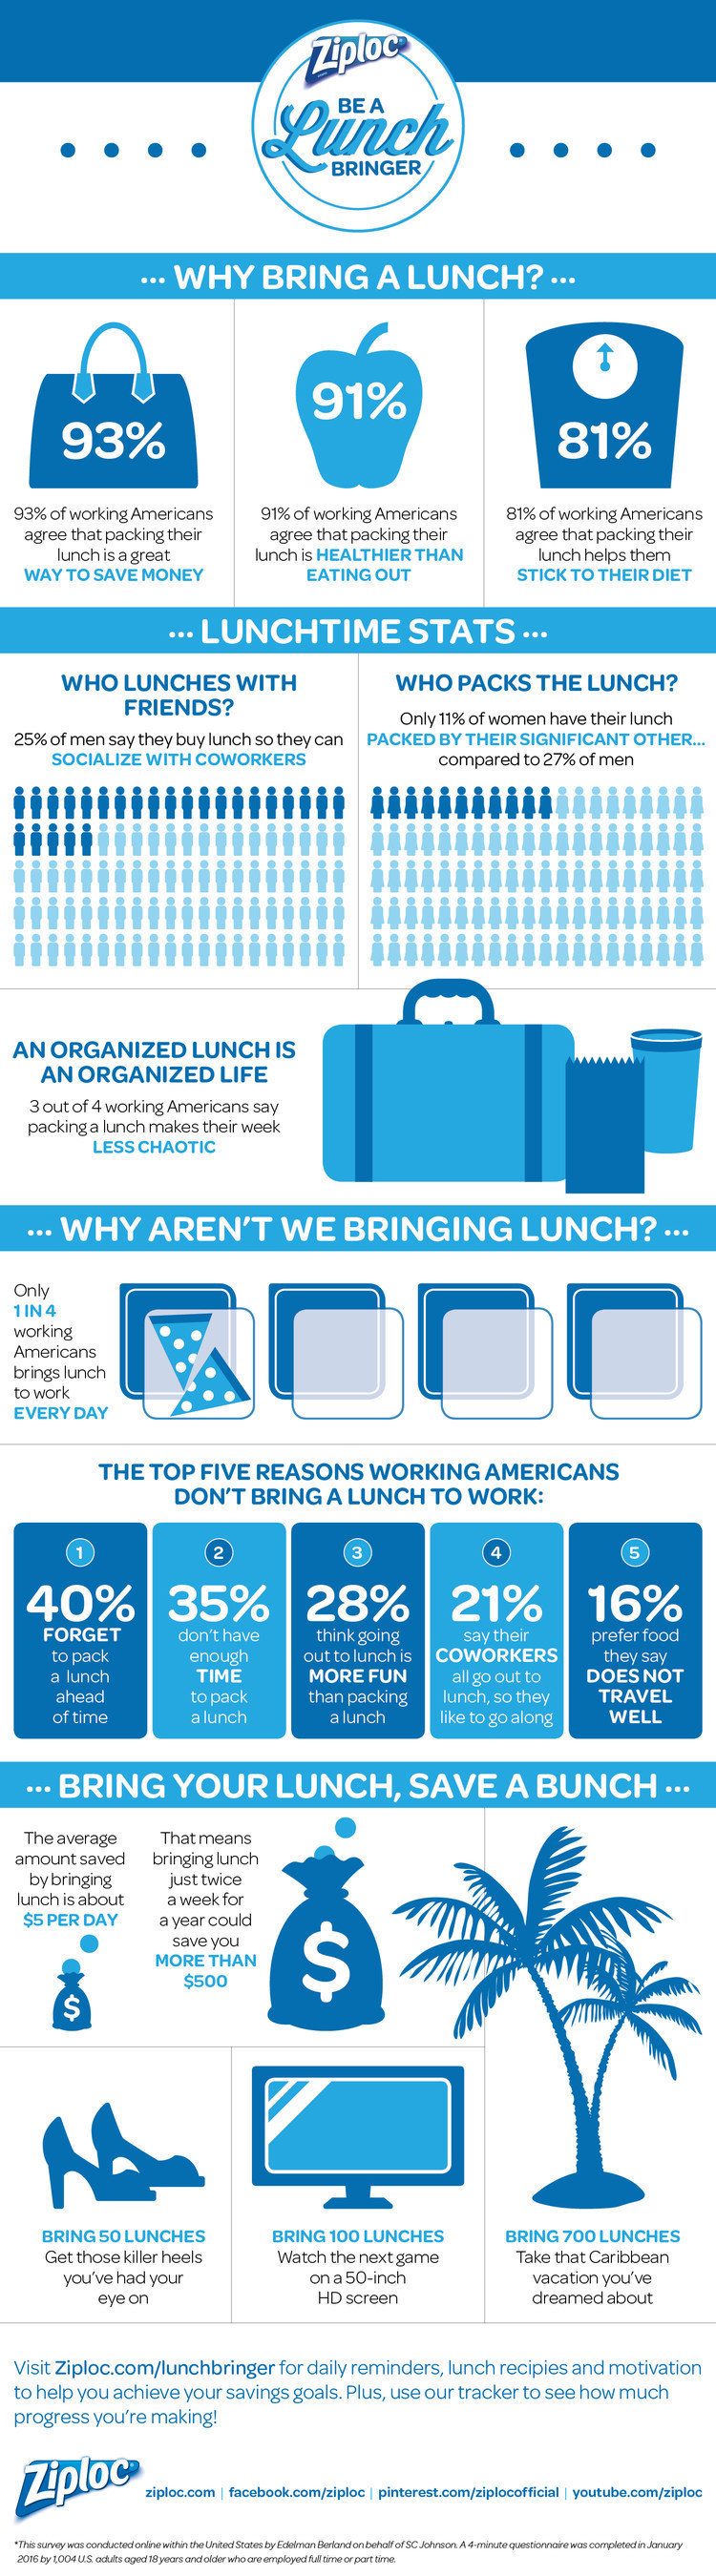 Being a Lunch Bringer helps lead to better personal health, less stress and helps you save money.